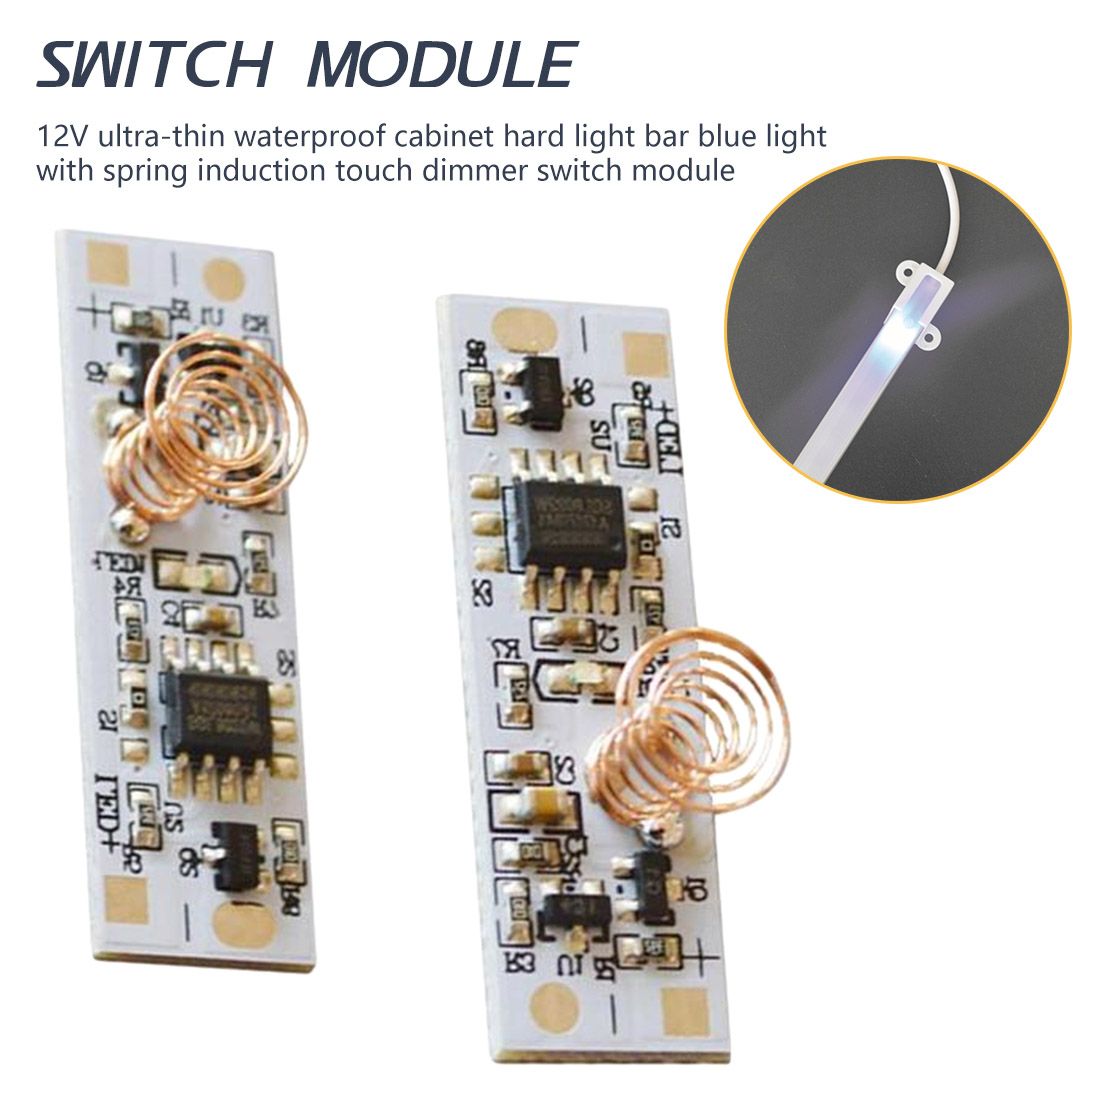 Lighting Accessories DC 3-24 V 36W 3A Capacitive Touch Sensor Switch Coil Spring Switch LED Dimmer Control Switch for Smart Home